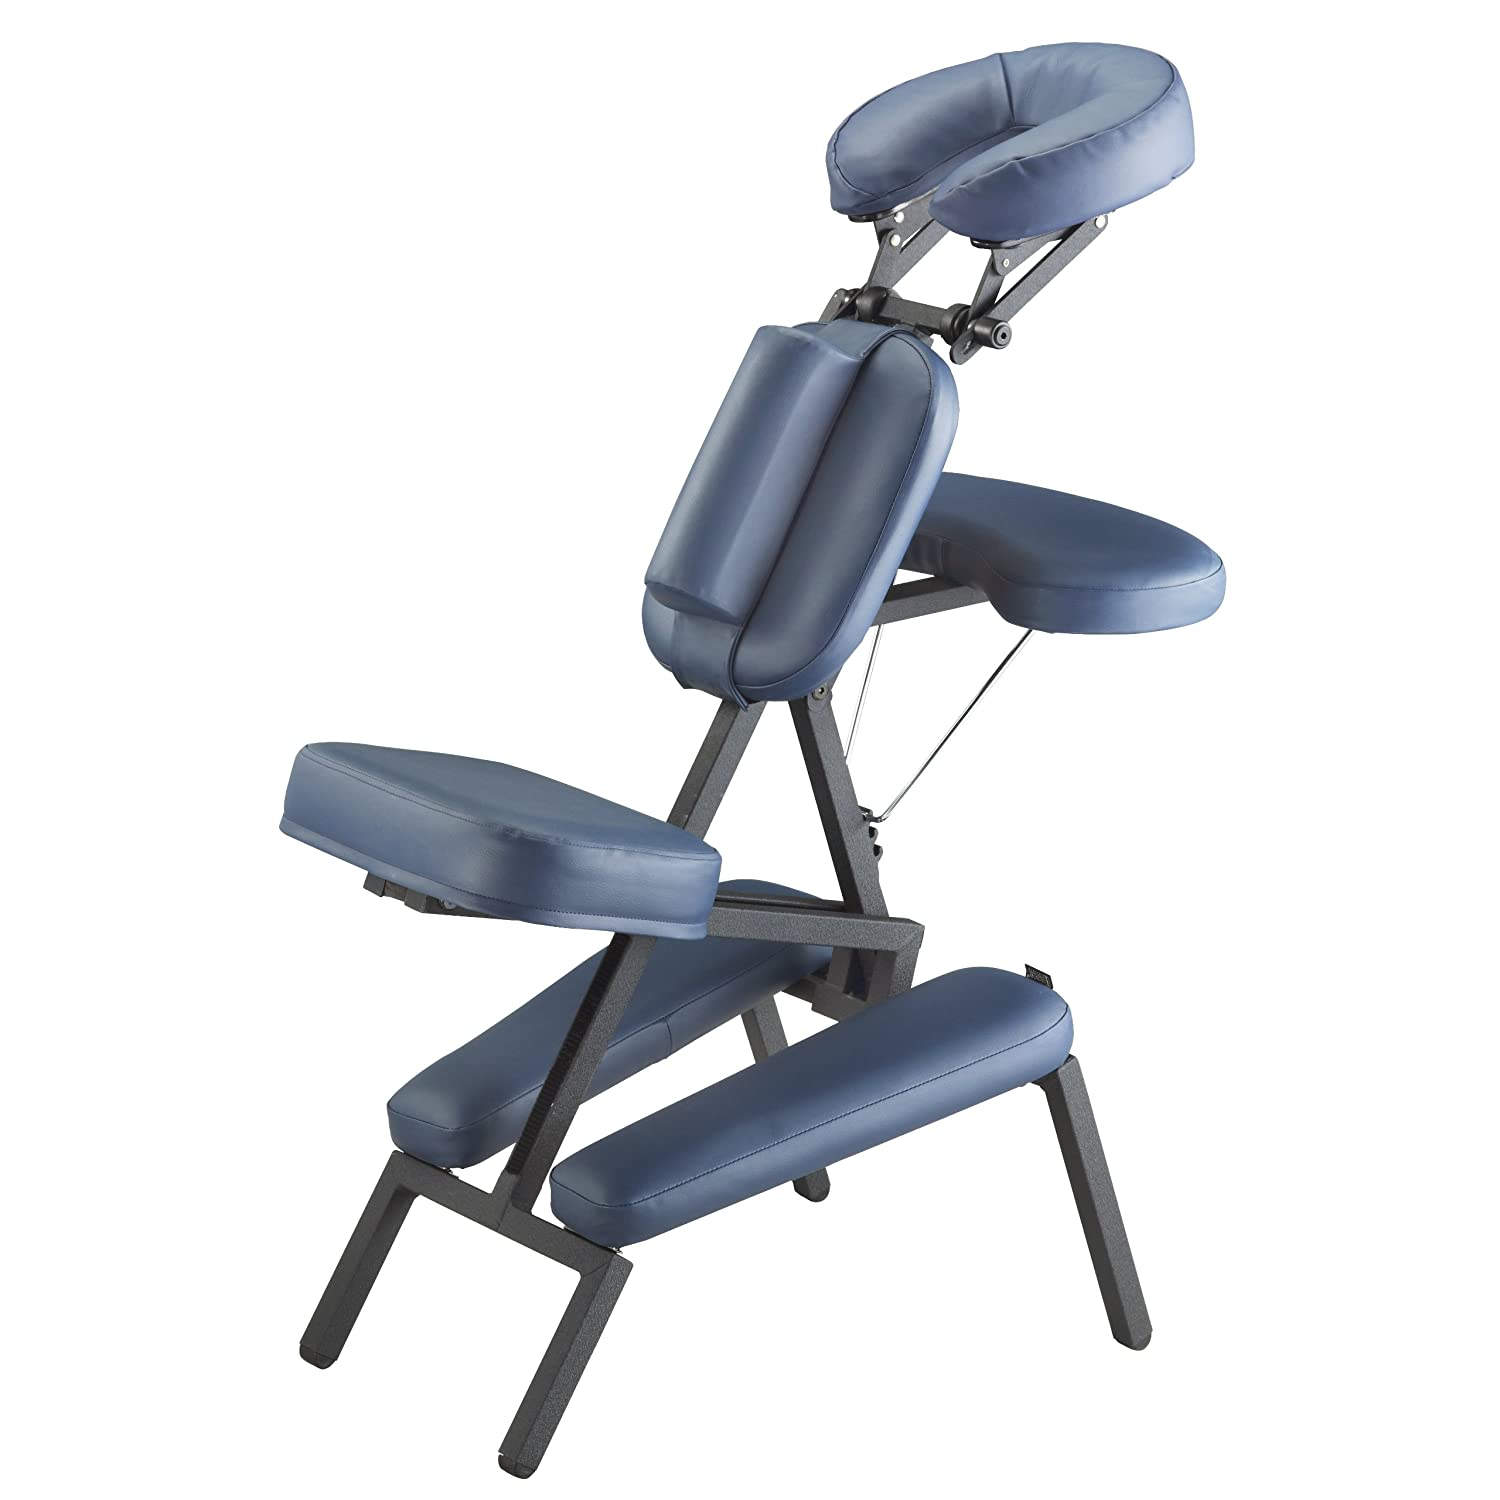 sale best table in chairs top for massage chair reviews portable